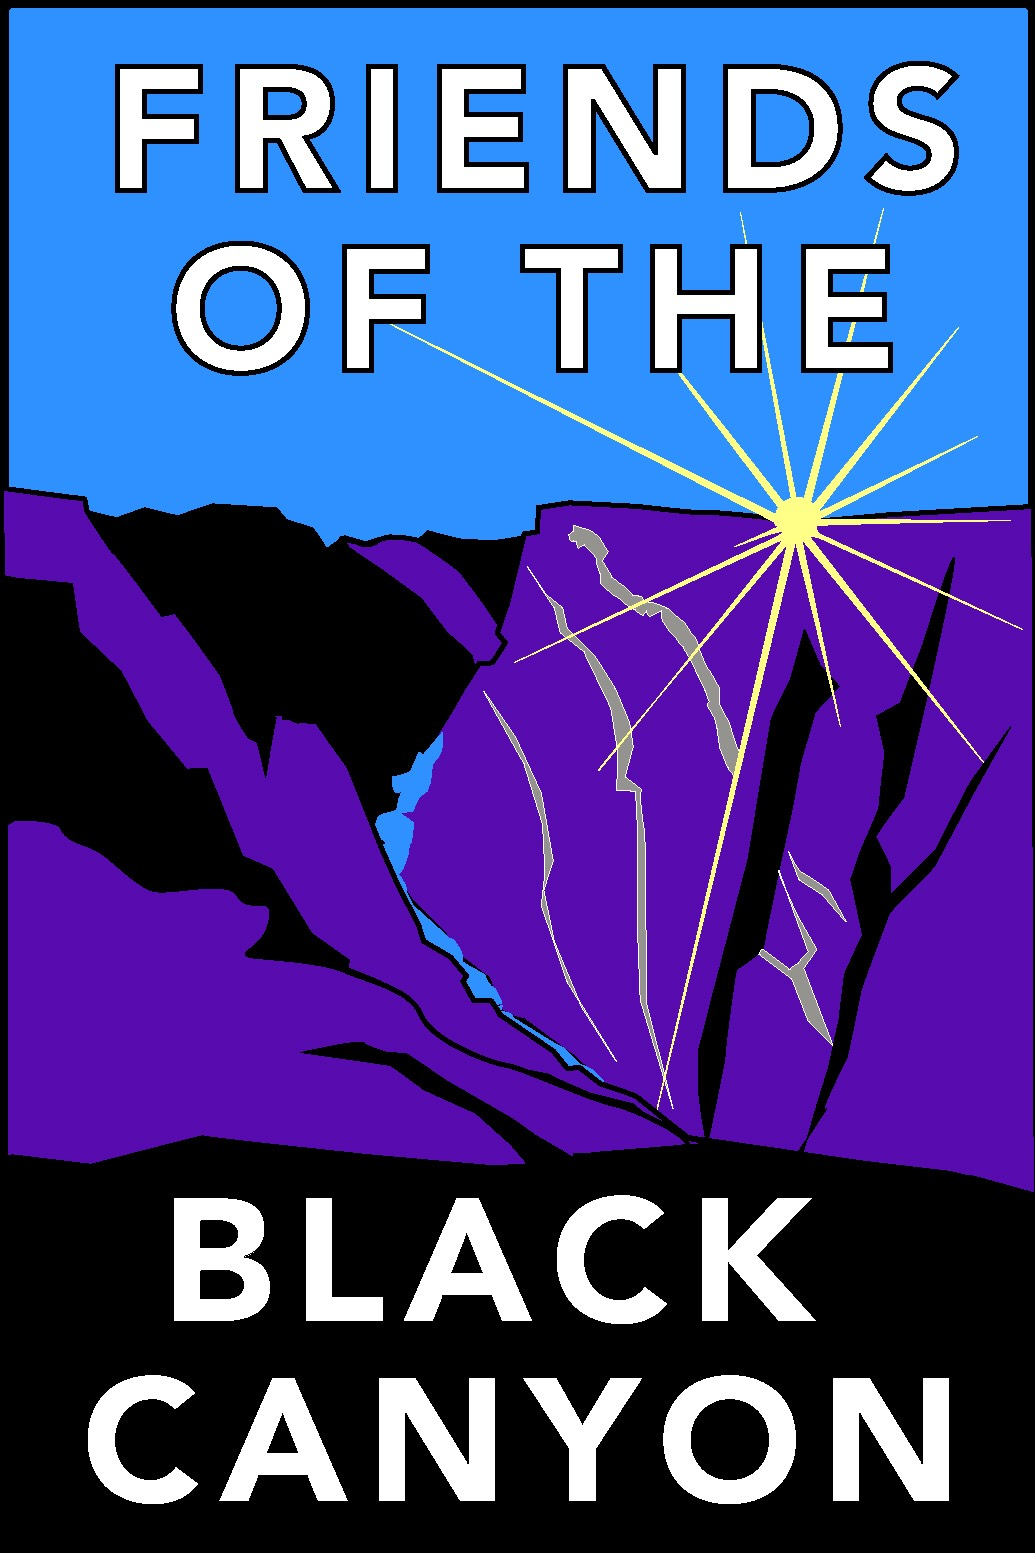 Friends of the Black Canyon of the Gunnison